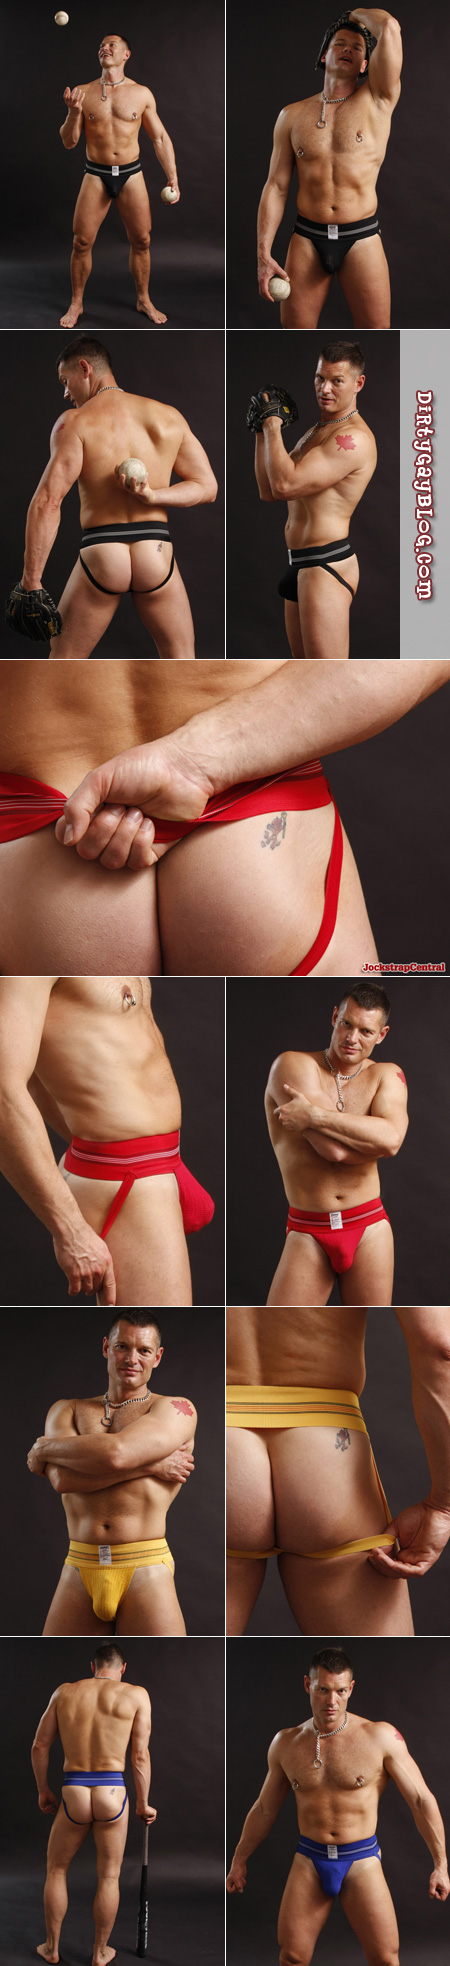 Dirty jockstraps, dirty pleasures